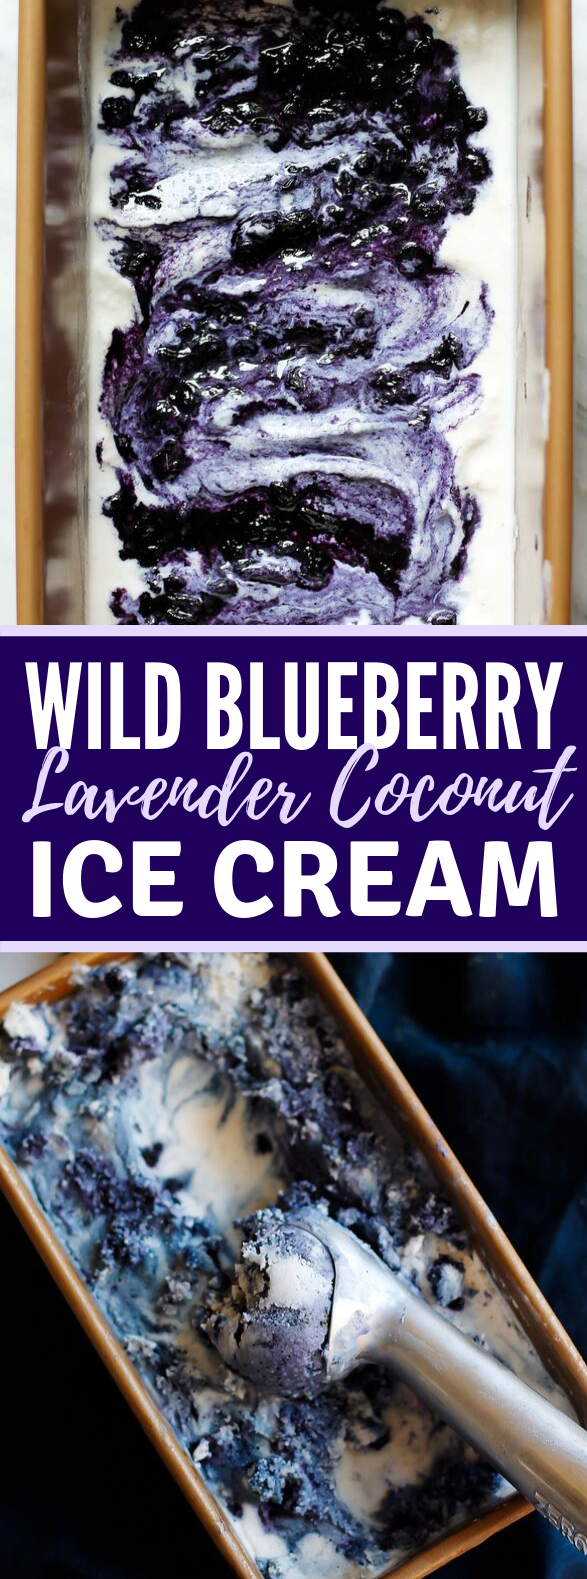 Wild Blueberry Lavender Coconut Ice Cream #desserts #vegan